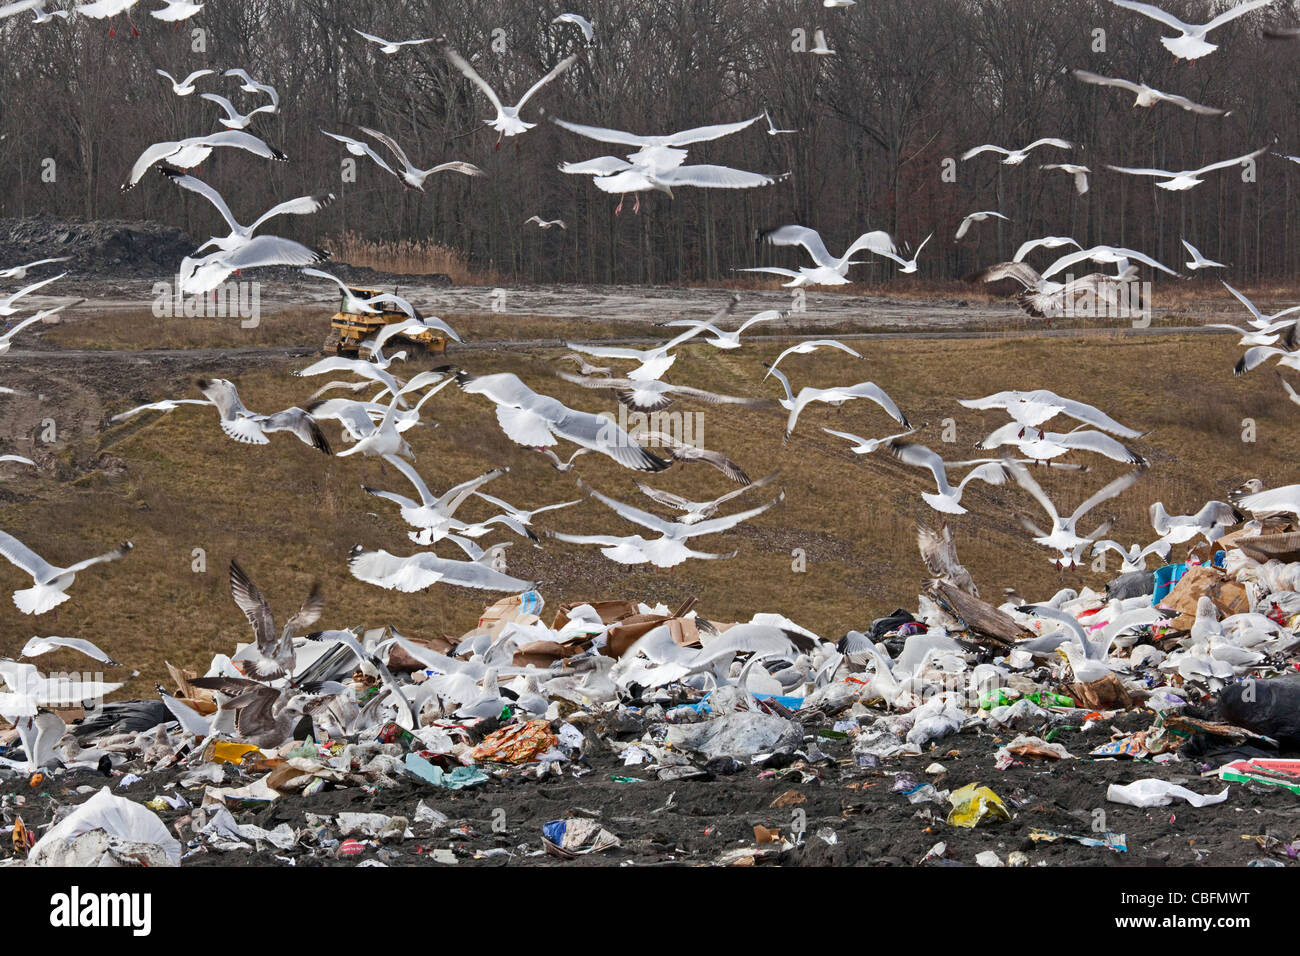 Smith's Creek, Michigan - Gulls swarm around garbage in a landfill. - Stock Image